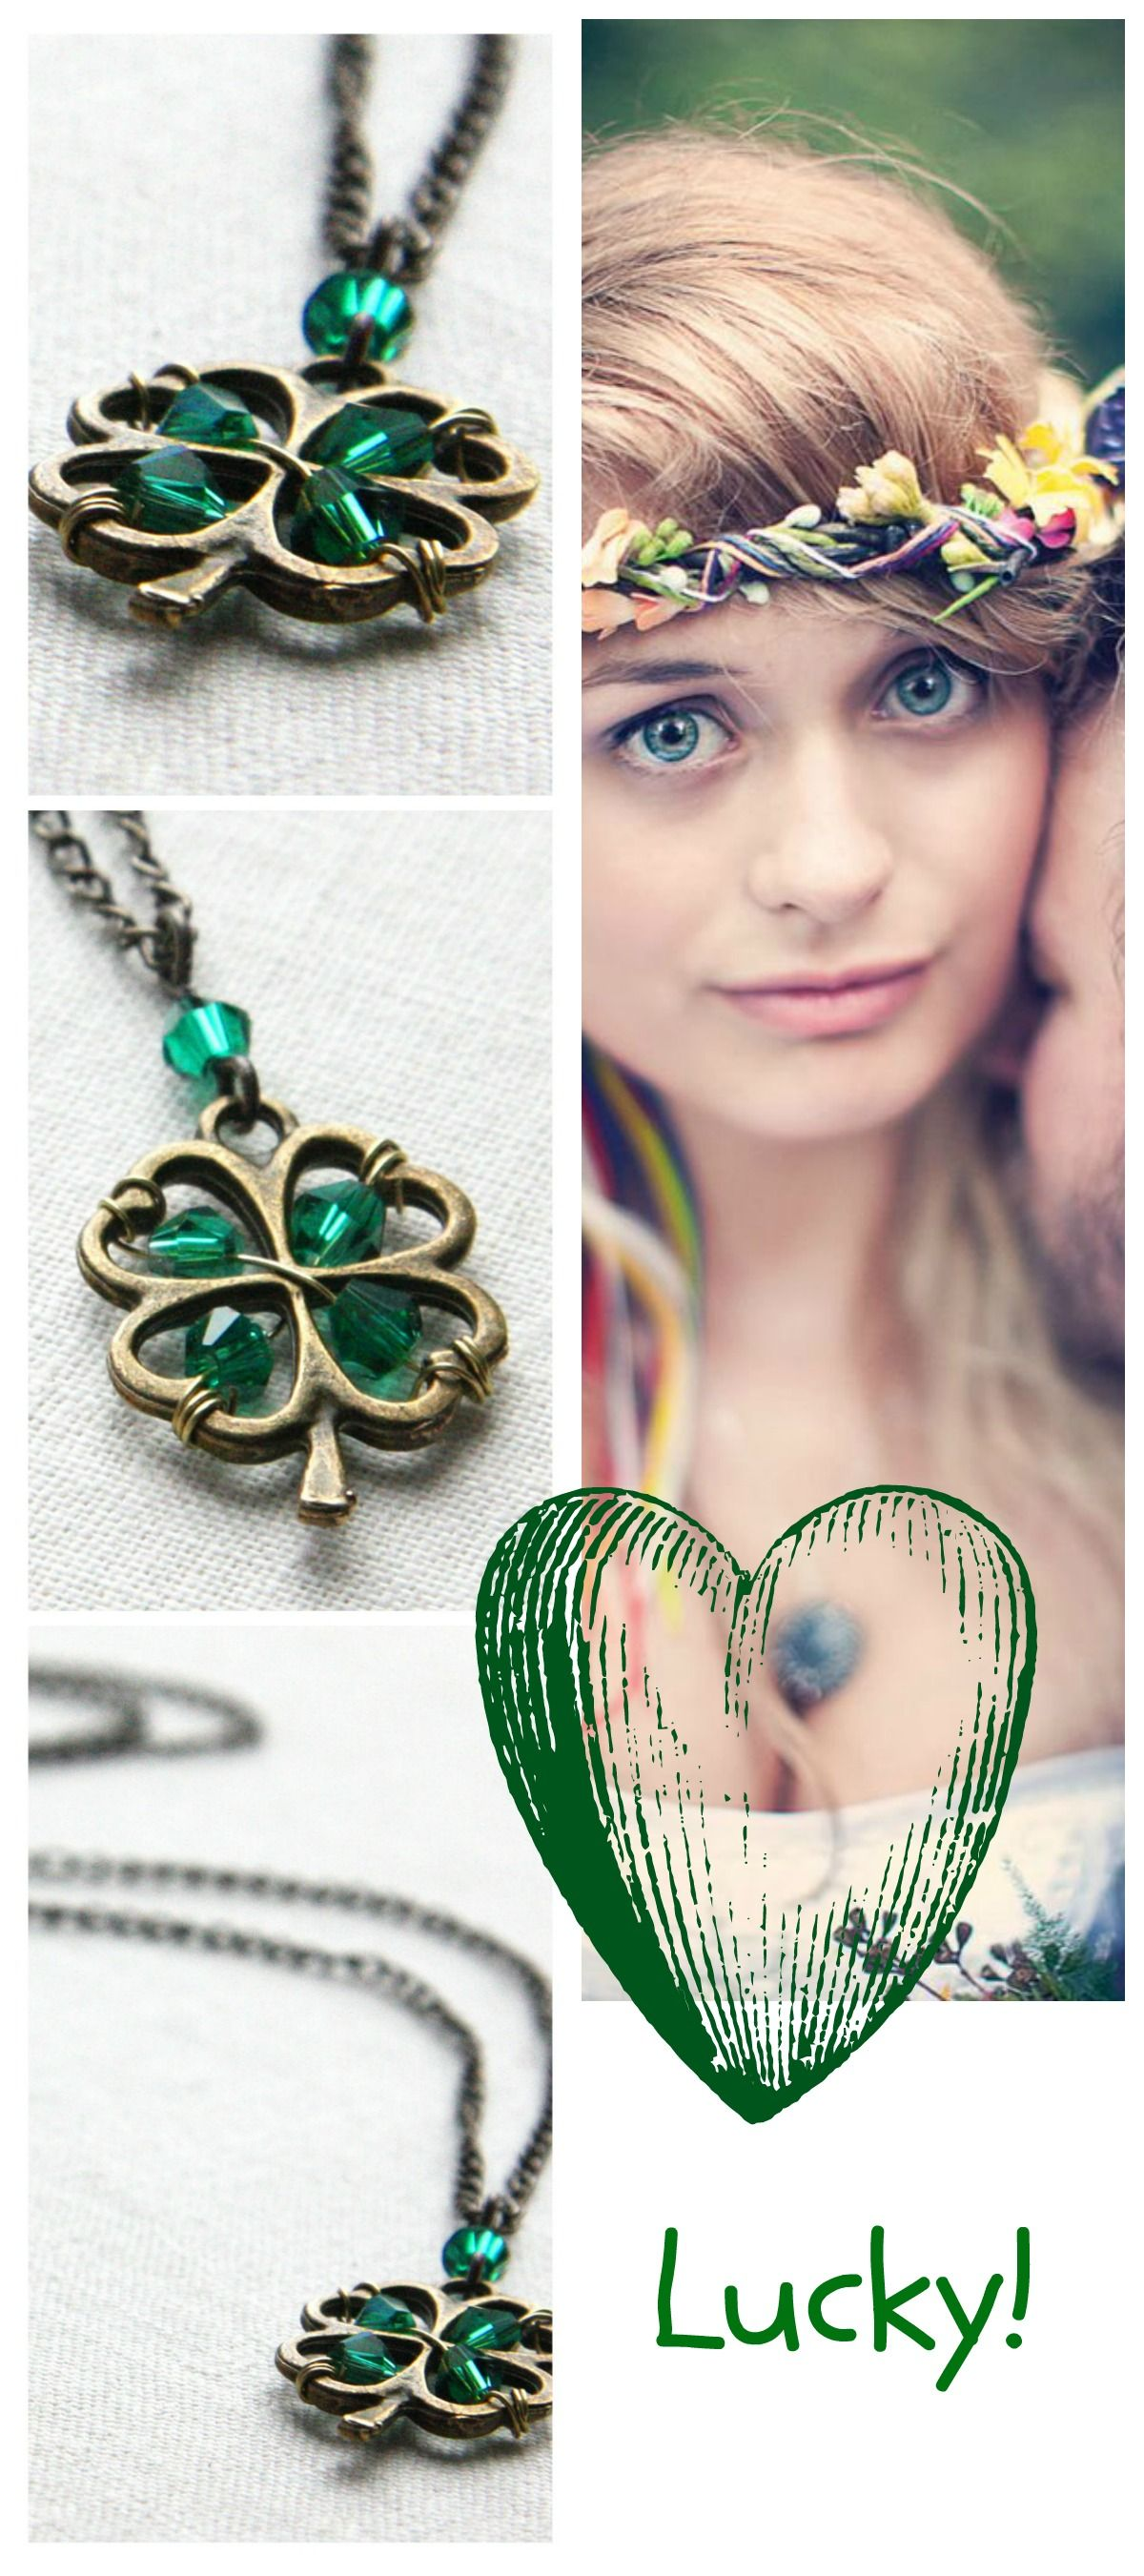 Green lucky shamrock necklace four leaf clover charm emerald green - St Patricks Day Necklace 4 Leaf Clover Necklace Four Leaf Clover Pendant Irish Shamrock Good Luck Green Crystal Necklace Wire Wrapped Gift